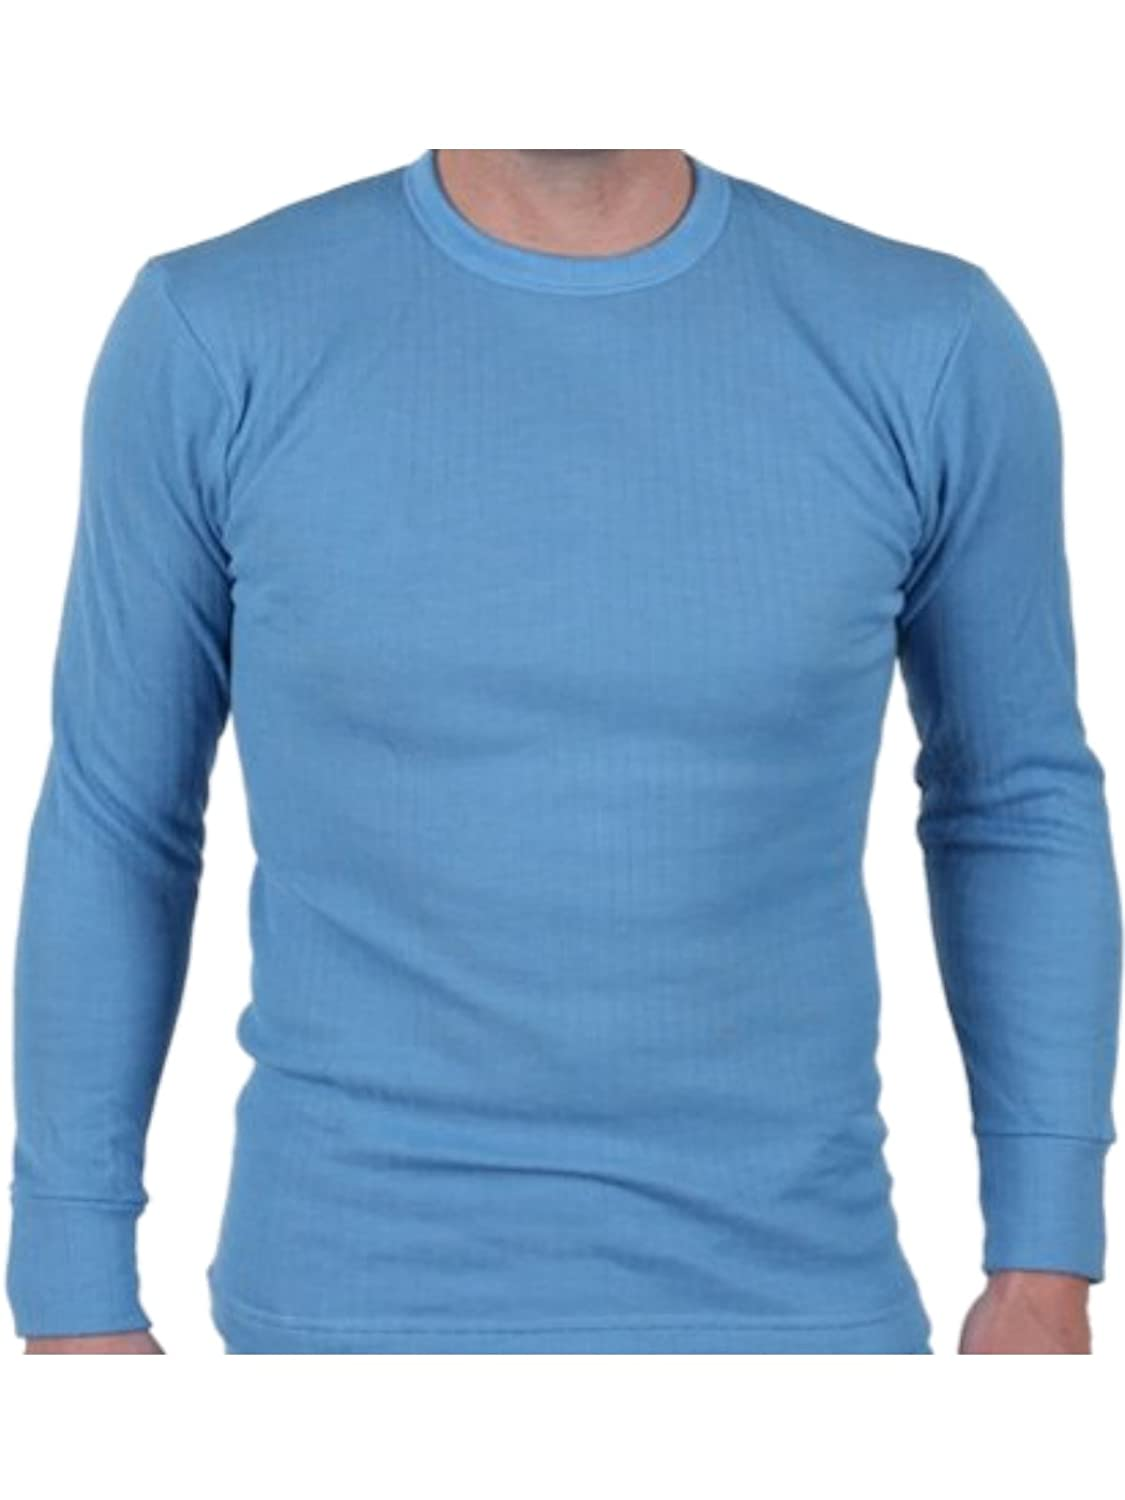 Available in White Mens Quality Thermal Long Sleeve Top Charcoal and in Sizes Small XX Large Blue X Large T-shirt Underwear Large Medium